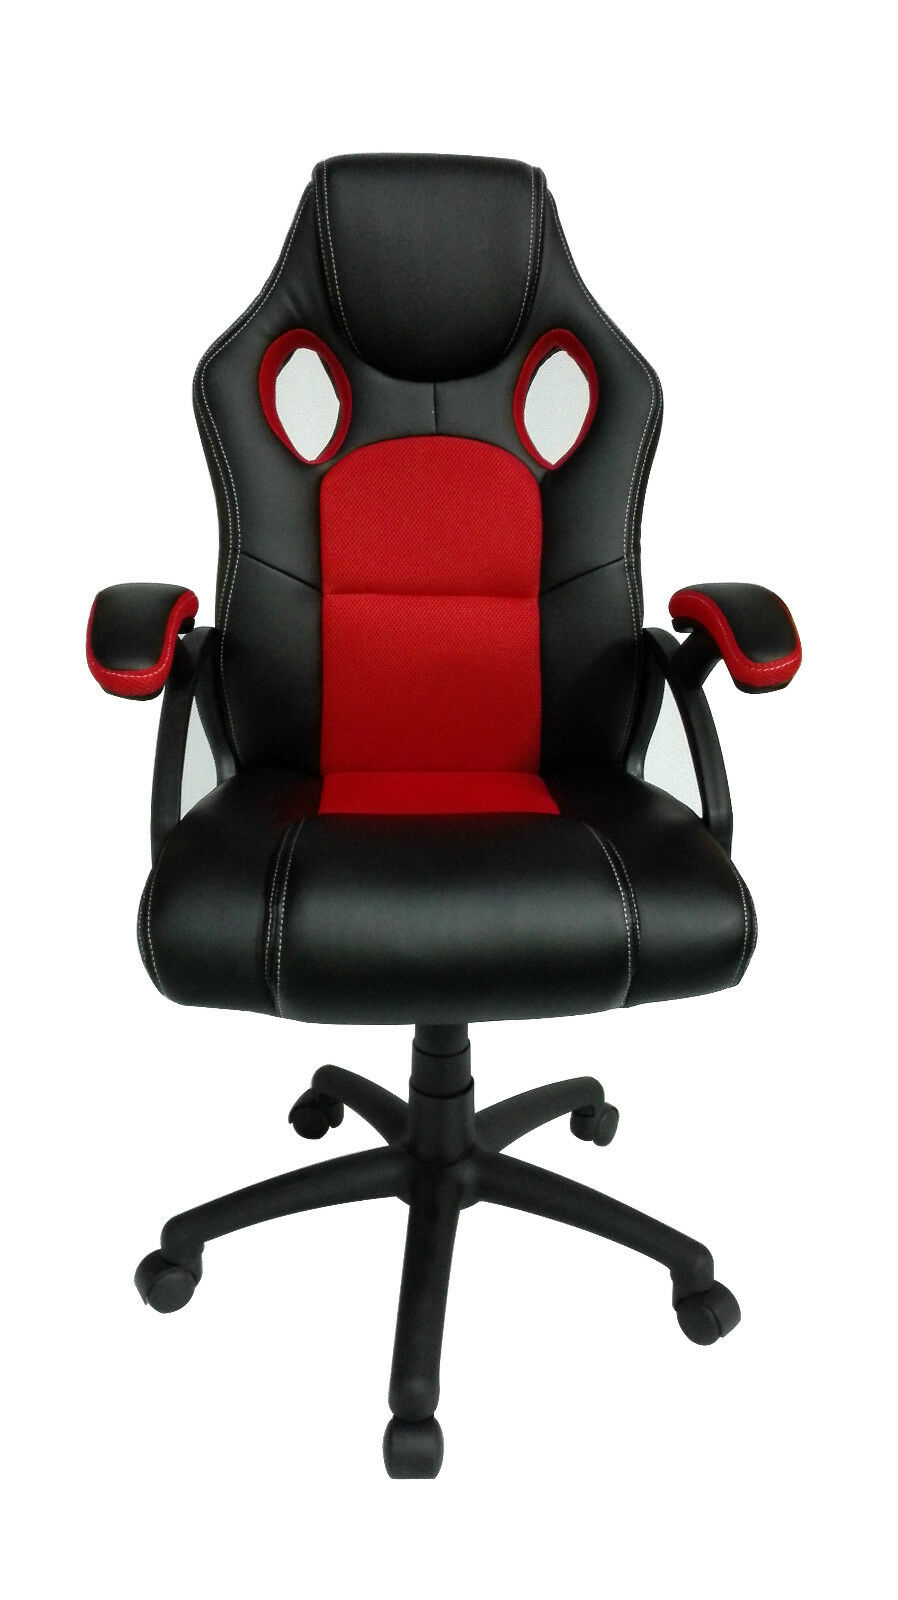 Racing Sport Bucket Computer Desk Gaming Office Chair Seat